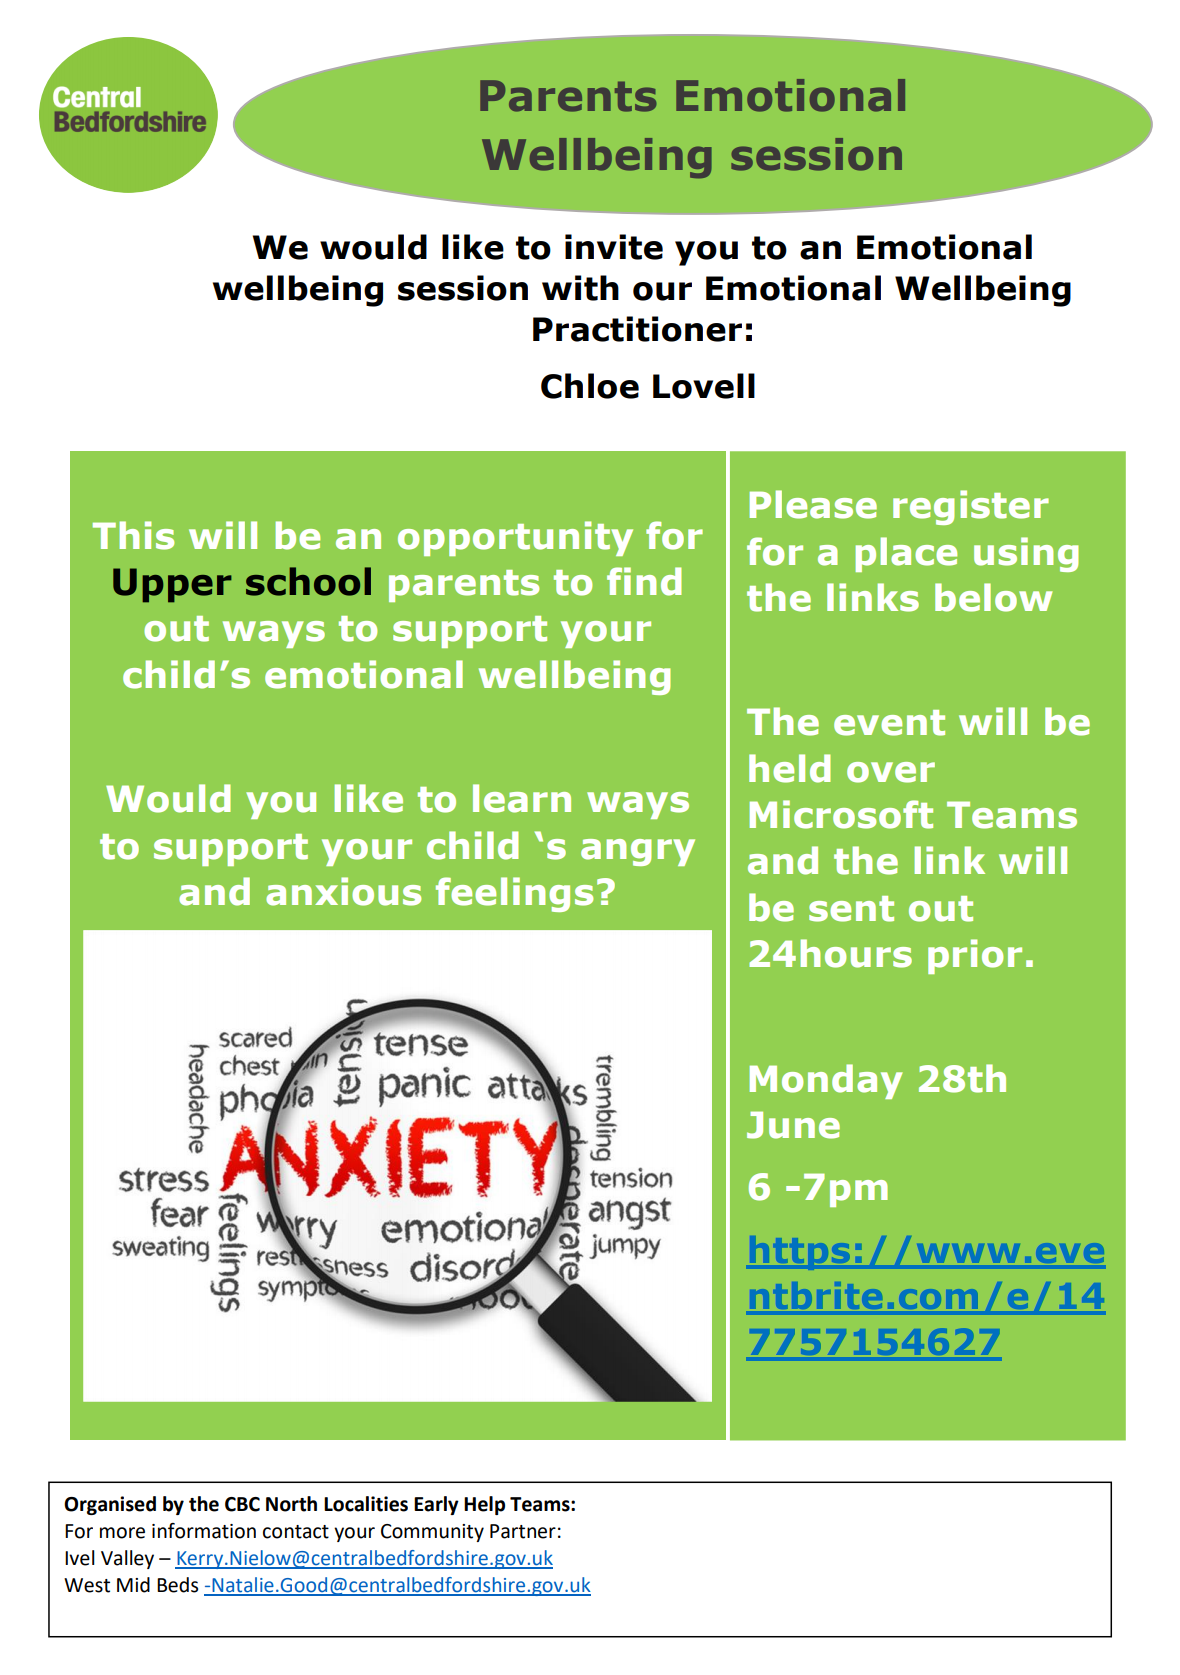 Parents Emotional Wellbeing Session - 28th June 2021